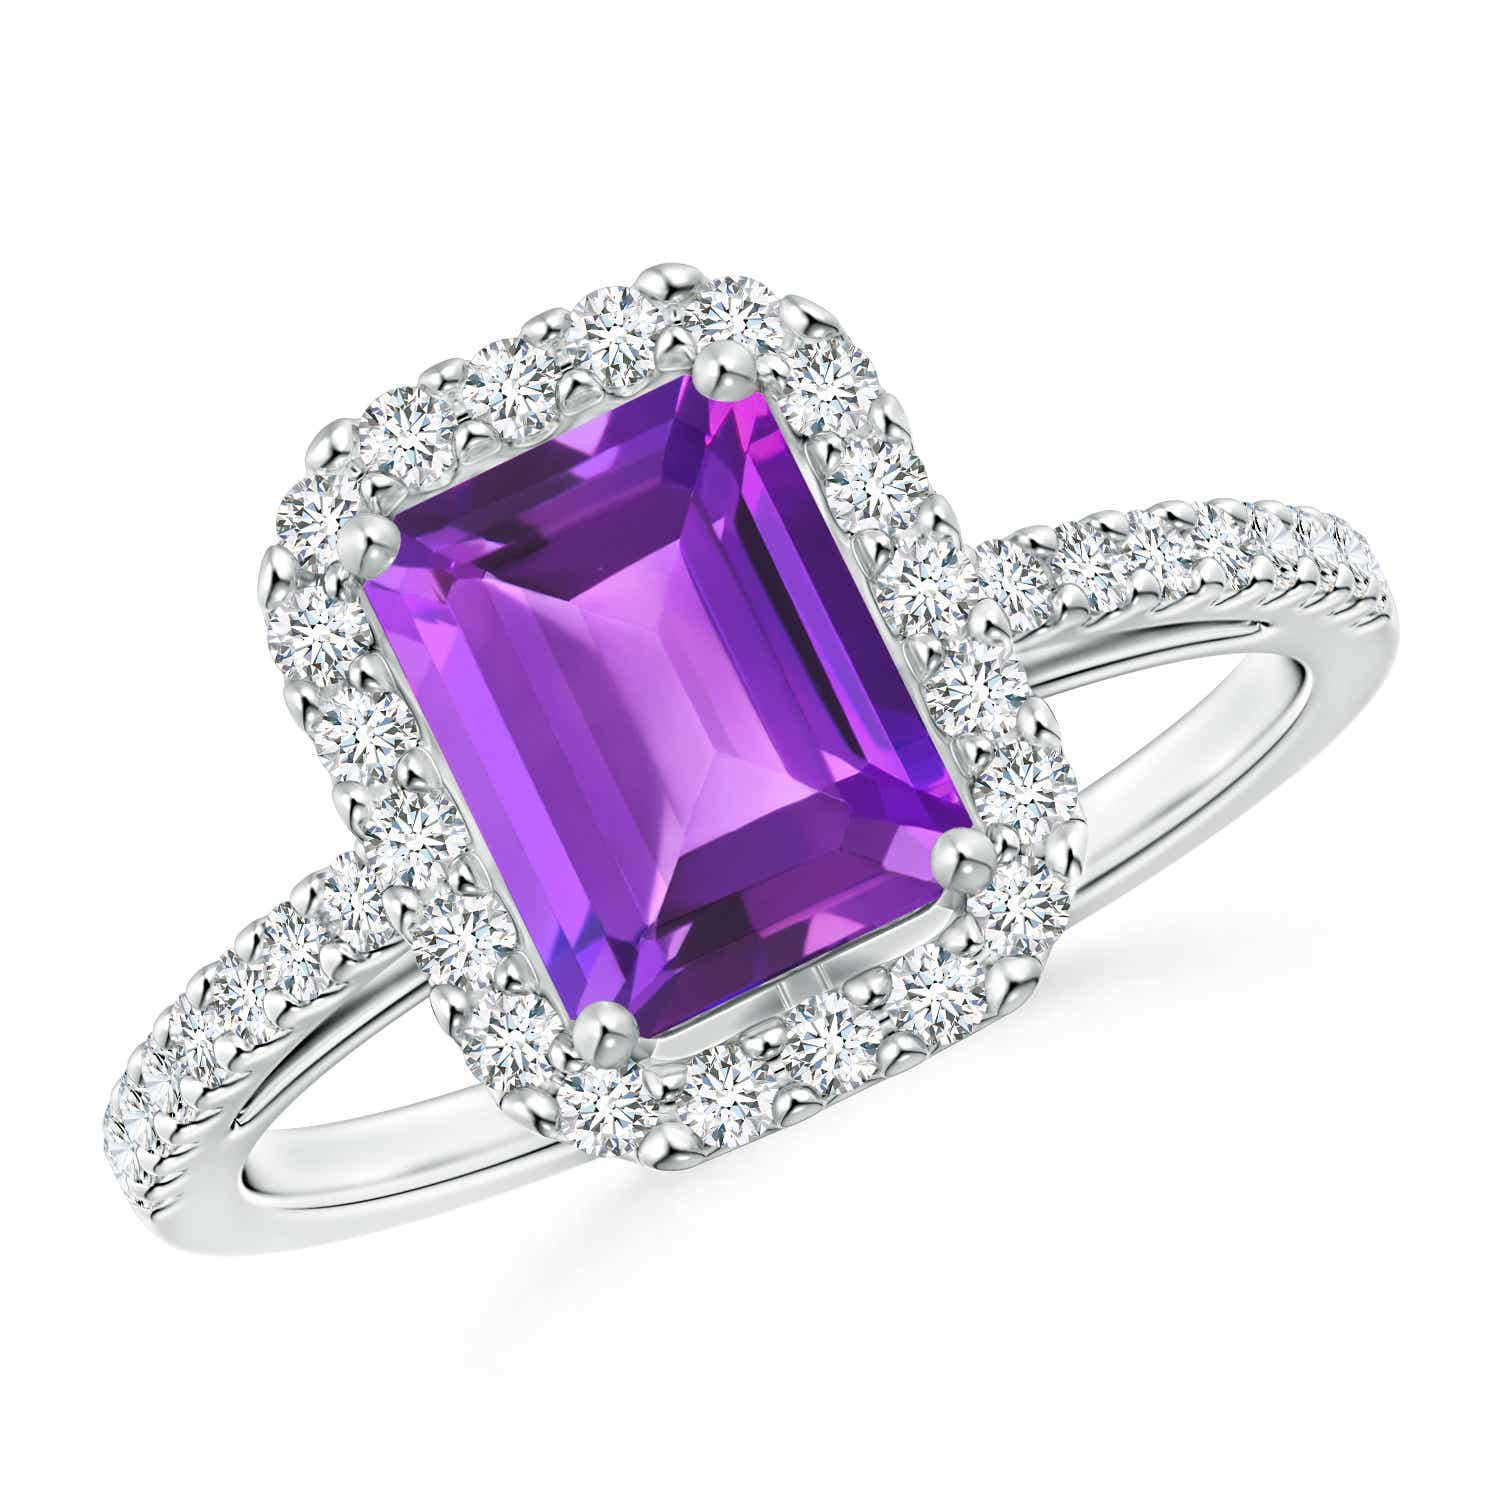 Angara Vintage Amethyst Engagement Ring in Yellow Gold 5z99lvujz